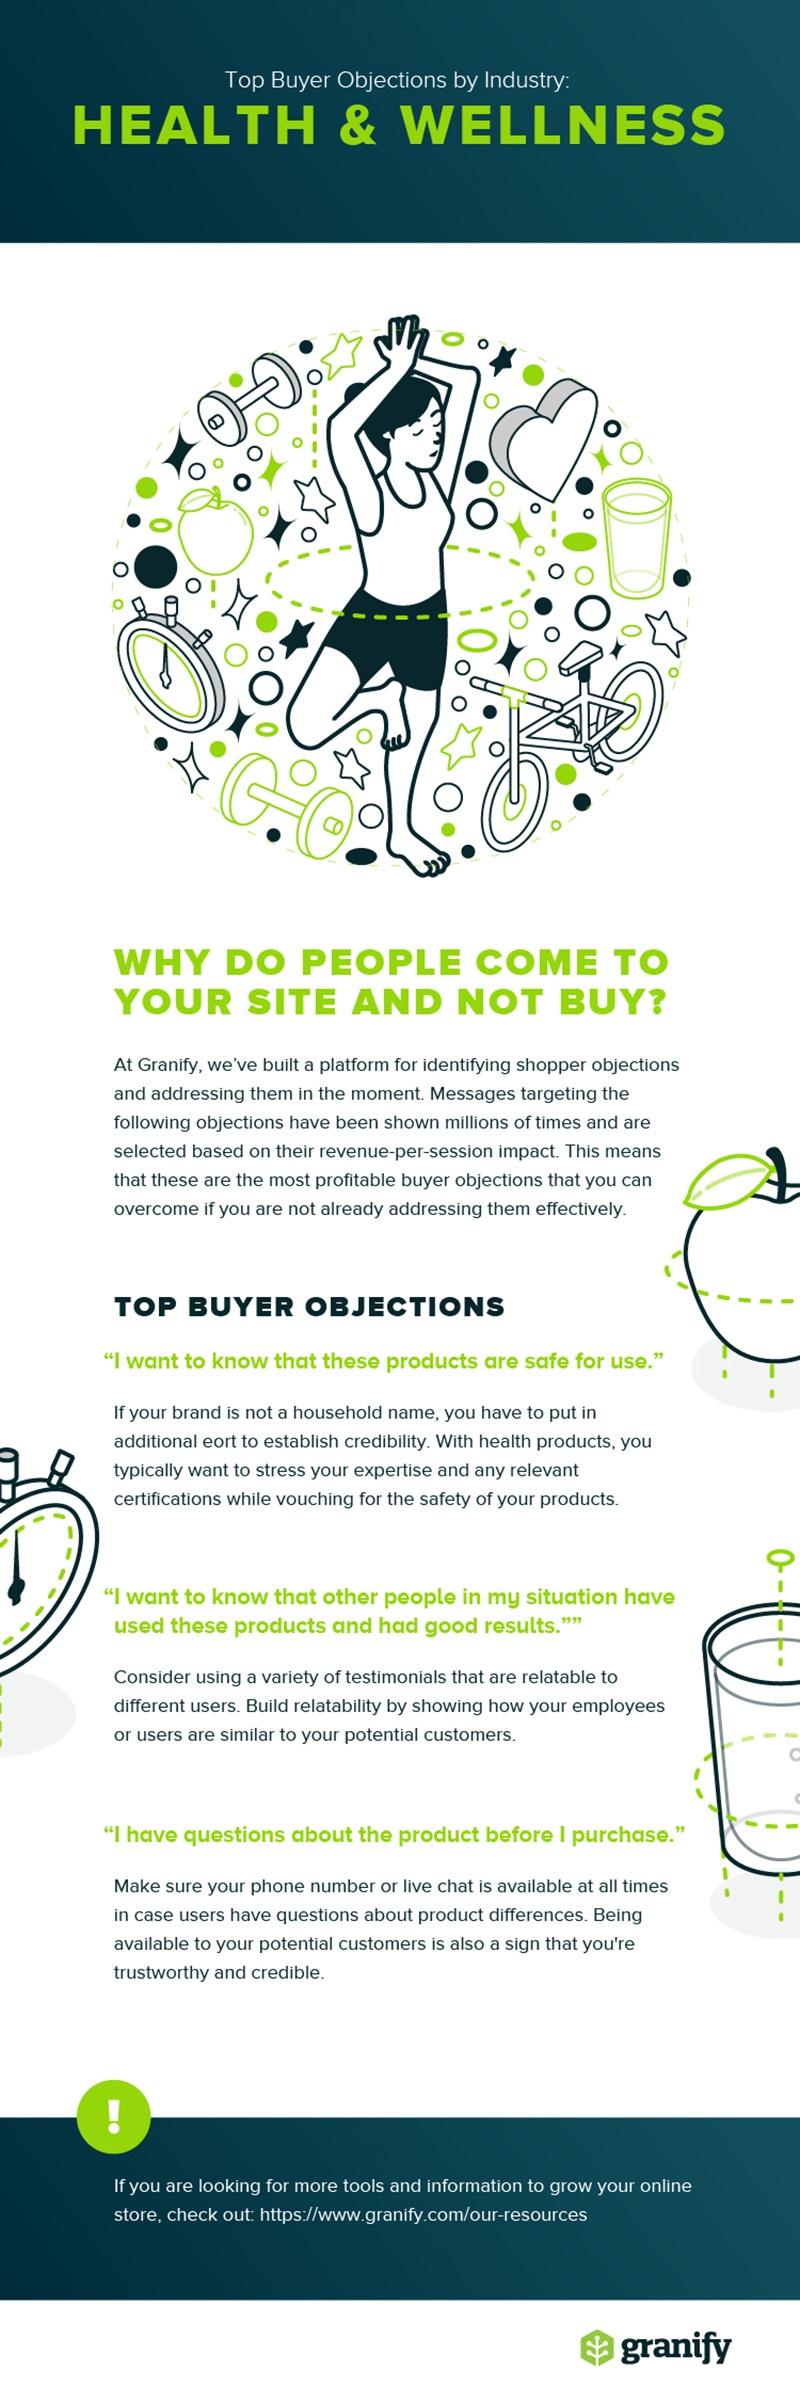 granify_health-wellness-objections_infographic_144